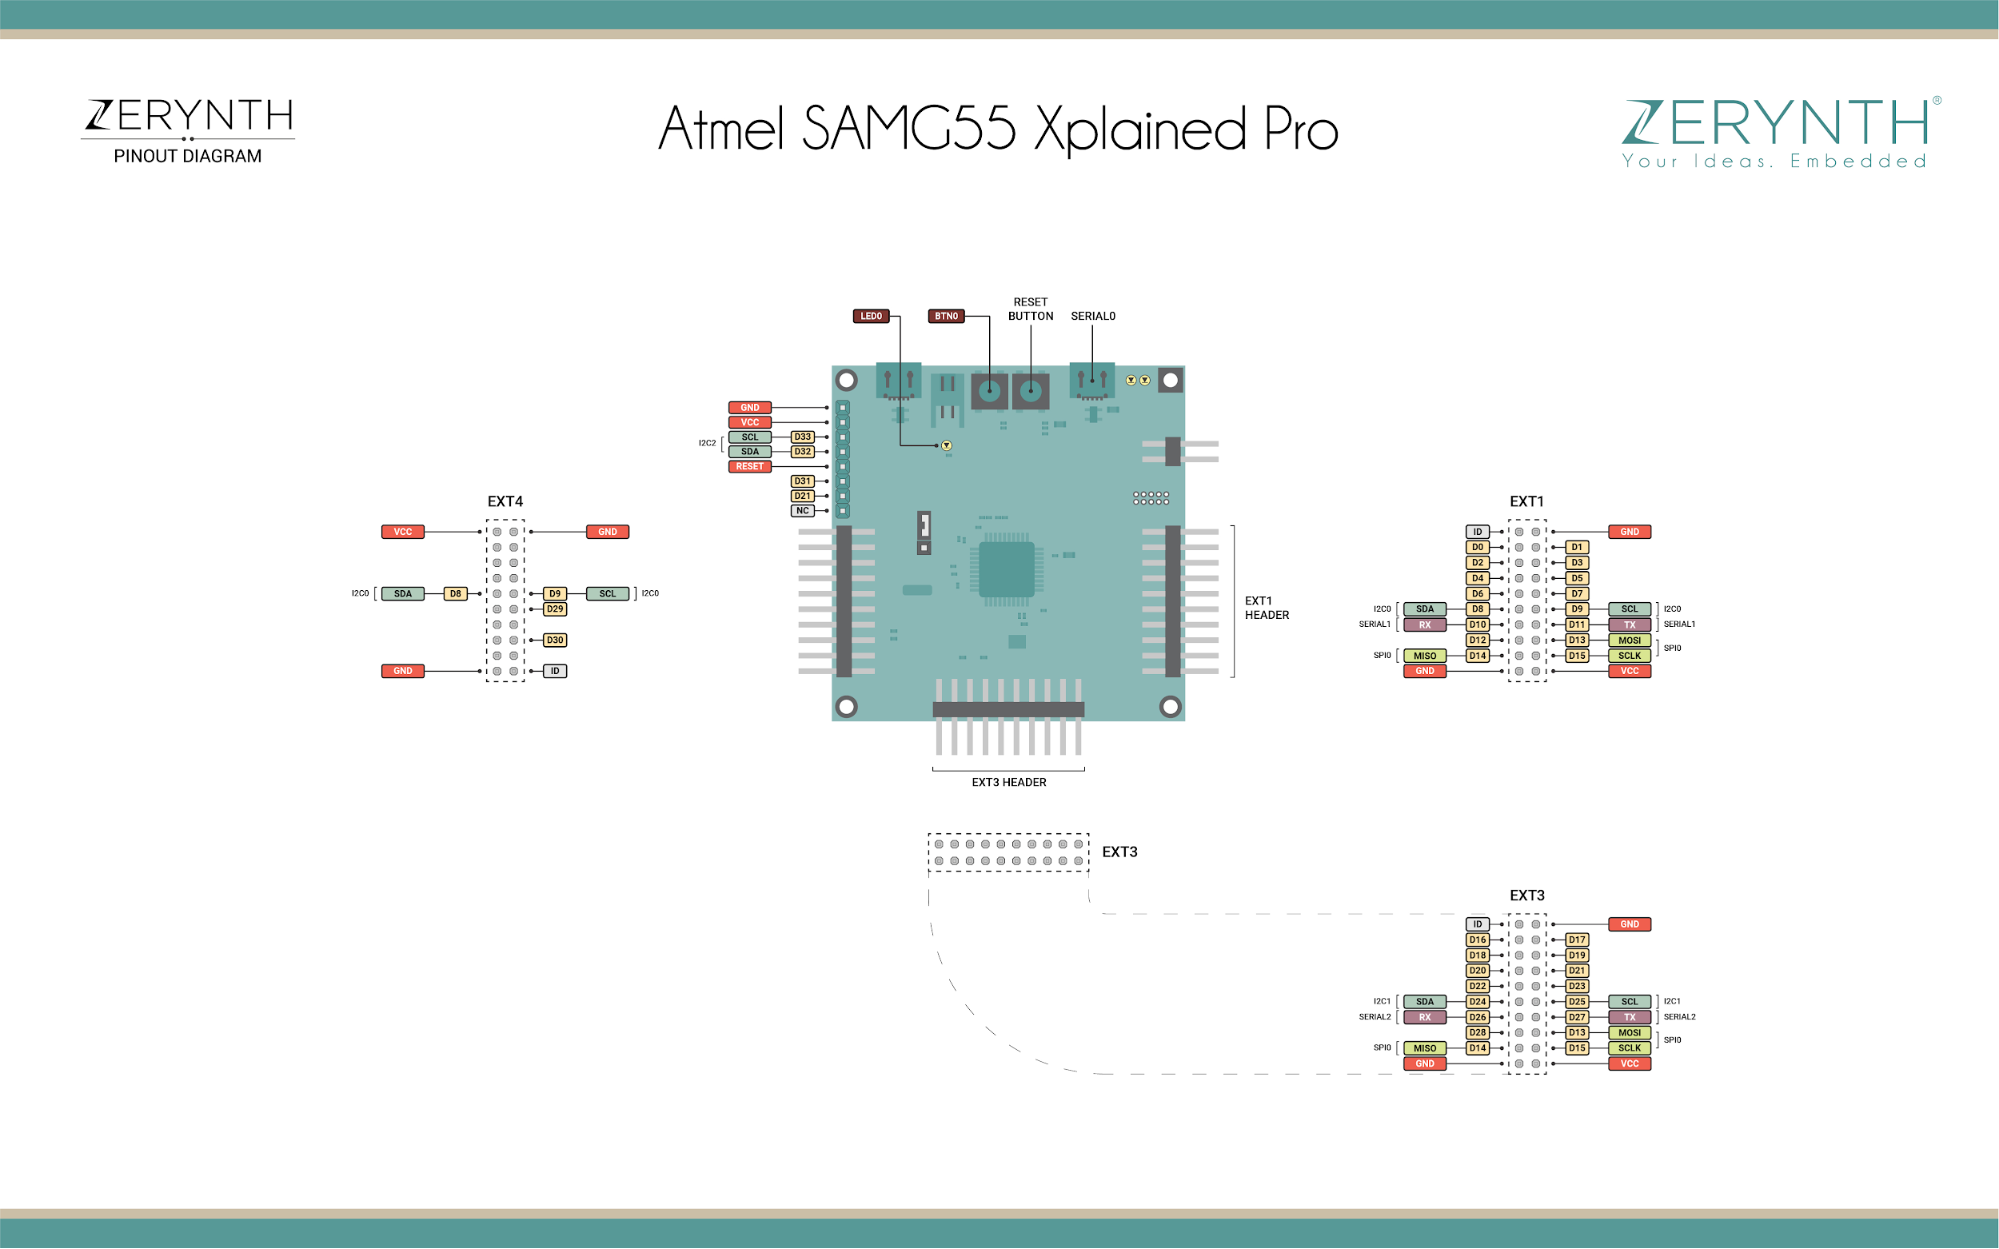 Programming Microchip's SAMG55 Xplained Pro in Python with